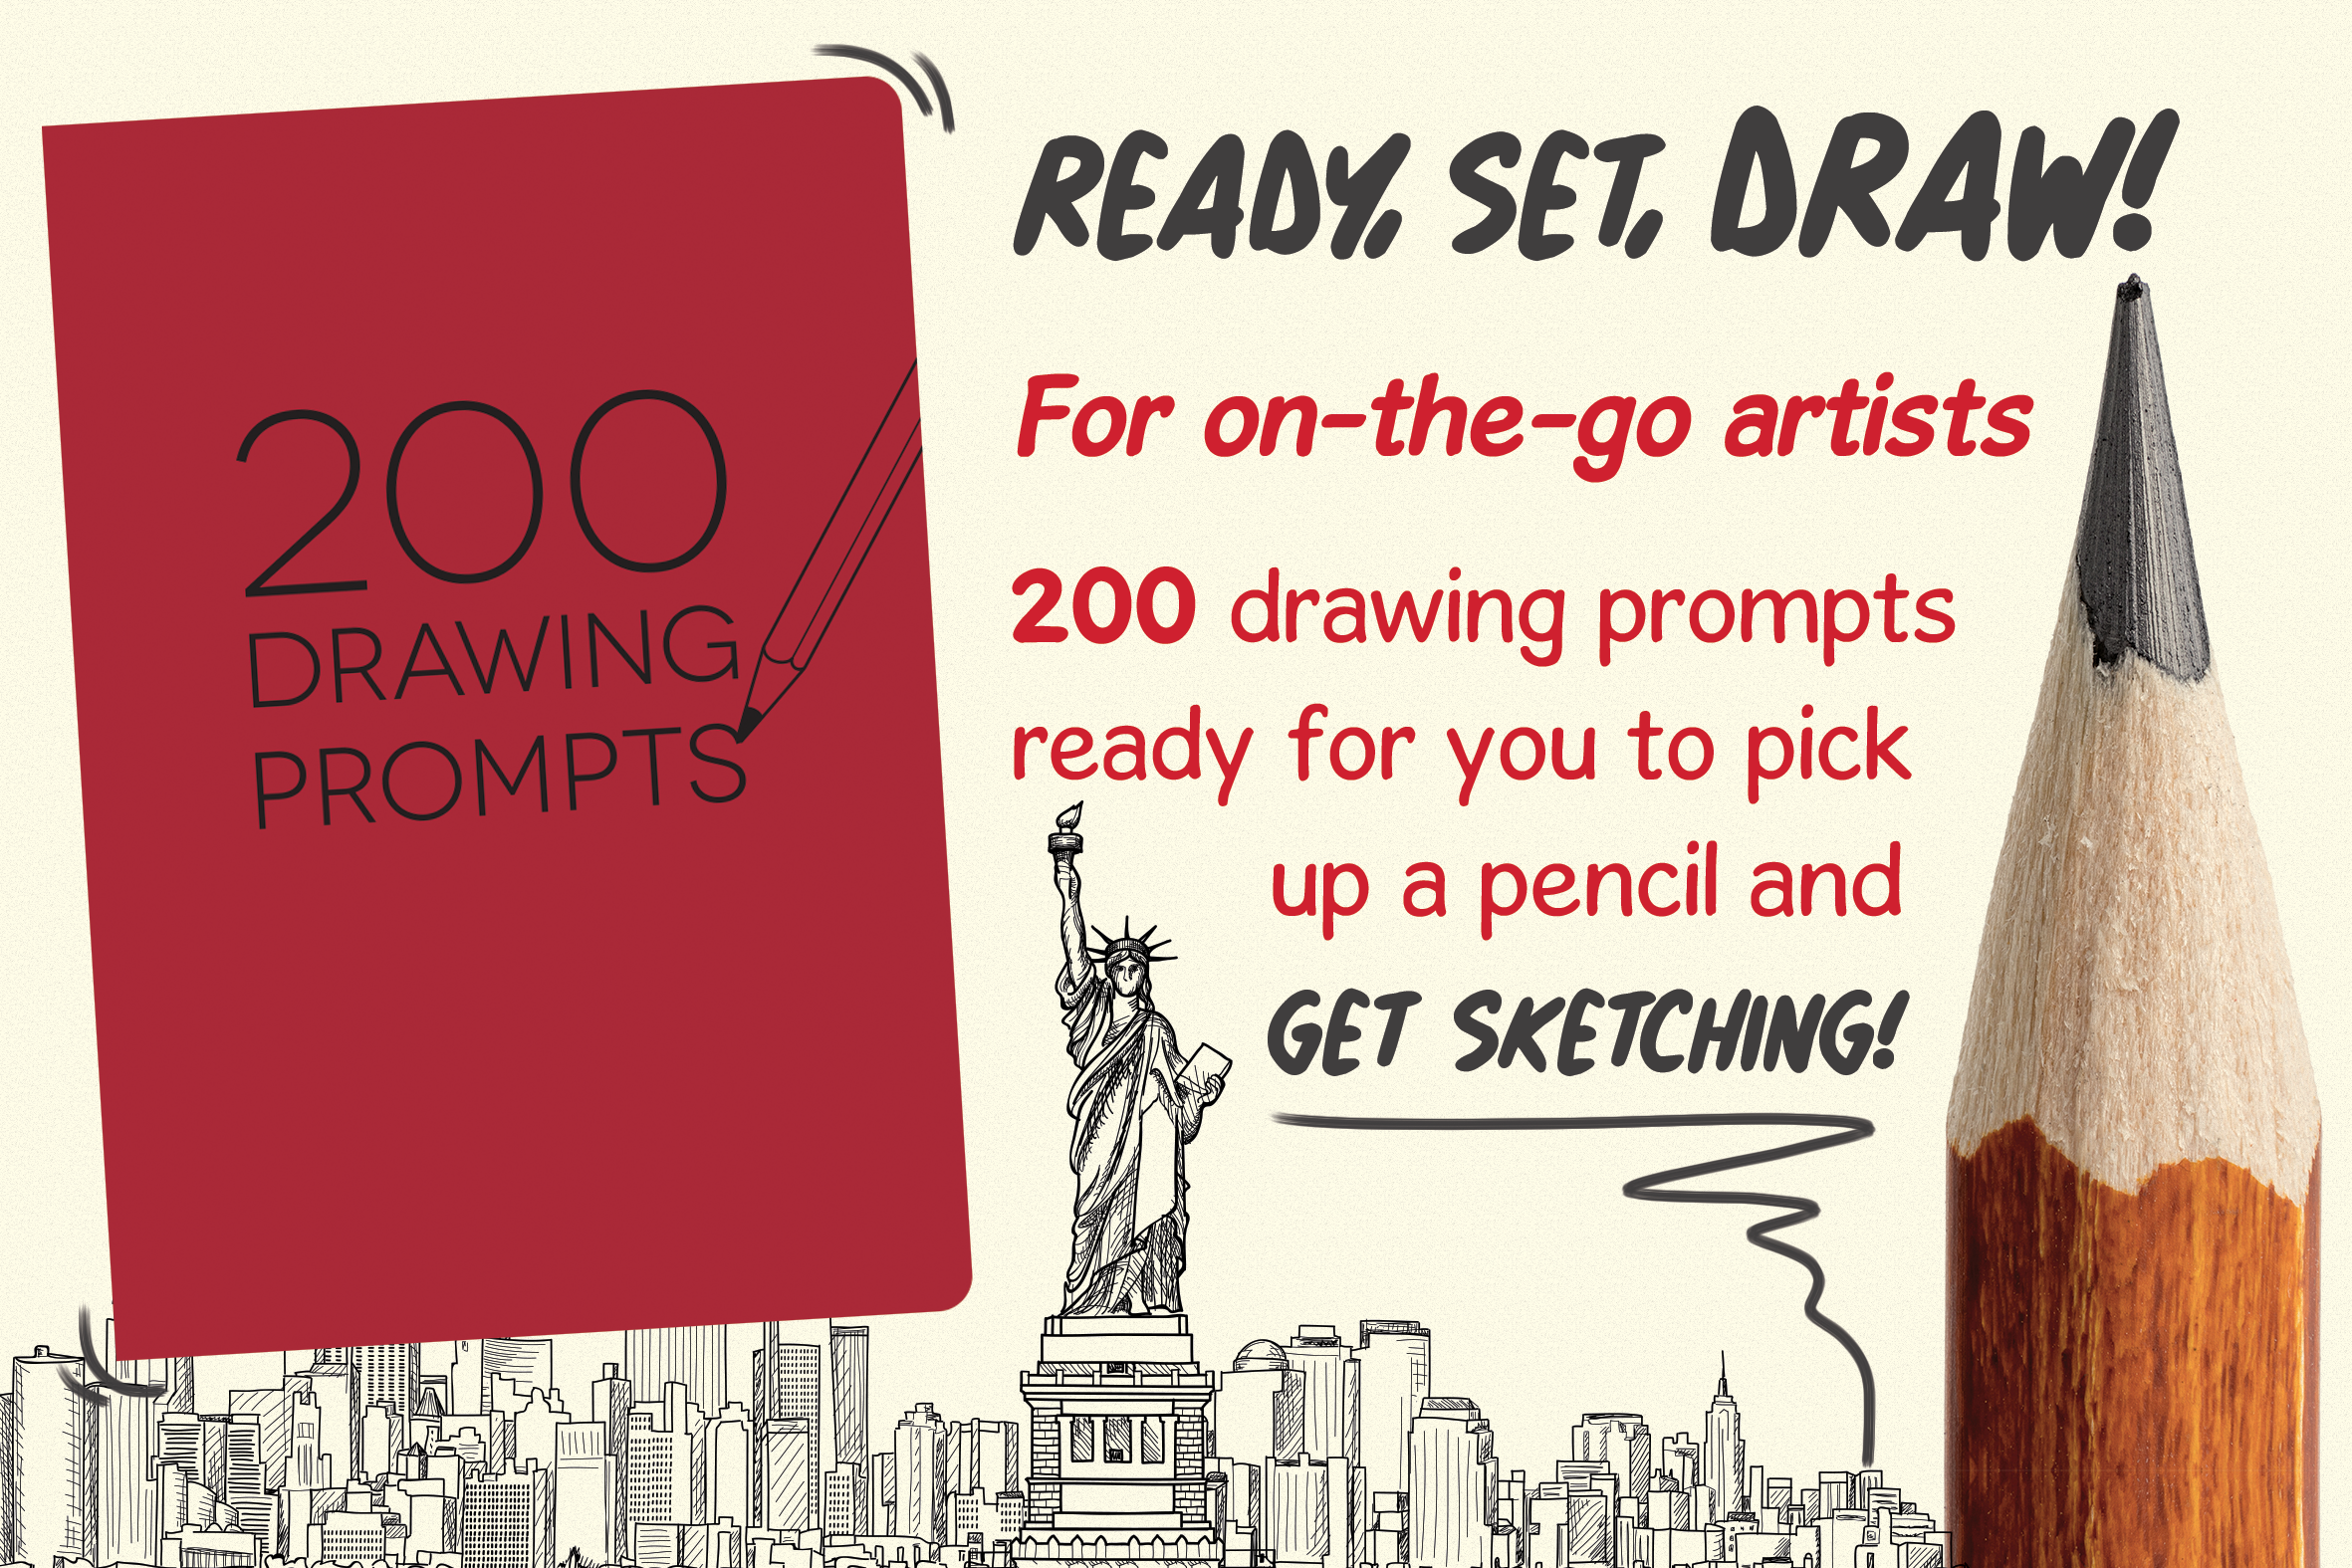 200 Drawing Prompts Graphic